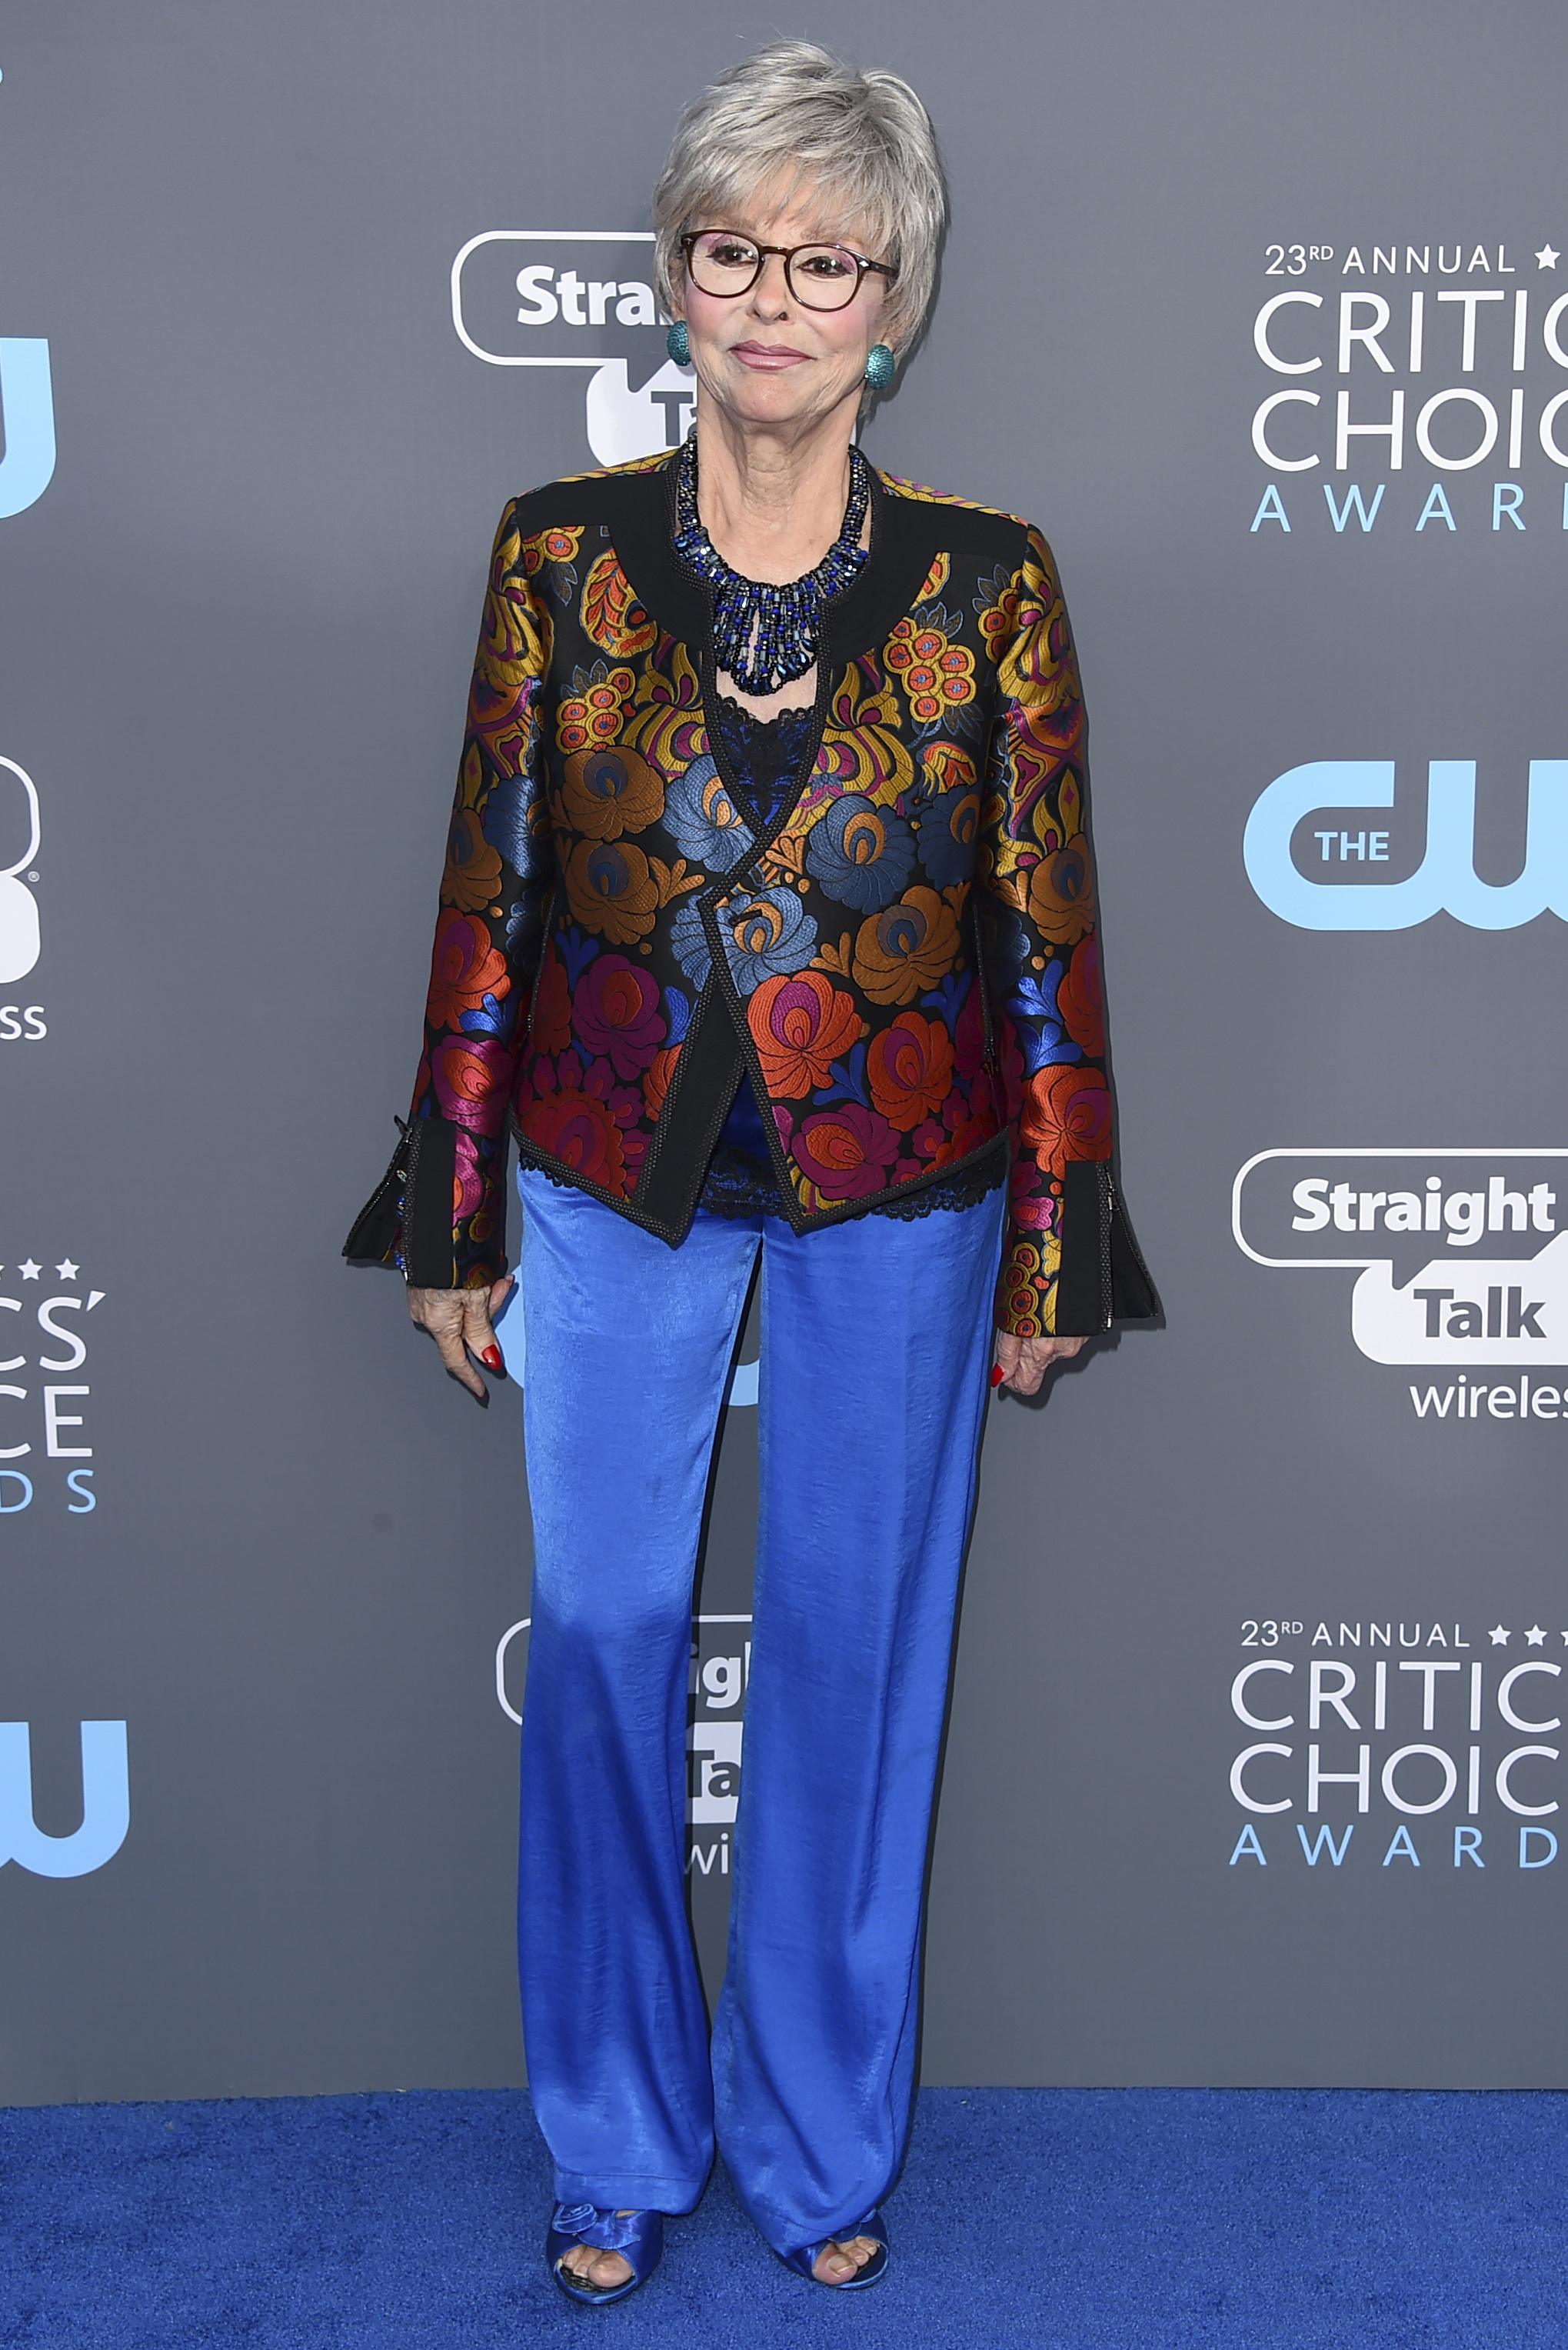 <div class='meta'><div class='origin-logo' data-origin='AP'></div><span class='caption-text' data-credit='Jordan Strauss/Invision/AP'>Rita Moreno arrives at the 23rd annual Critics' Choice Awards at the Barker Hangar on Thursday, Jan. 11, 2018, in Santa Monica, Calif.</span></div>